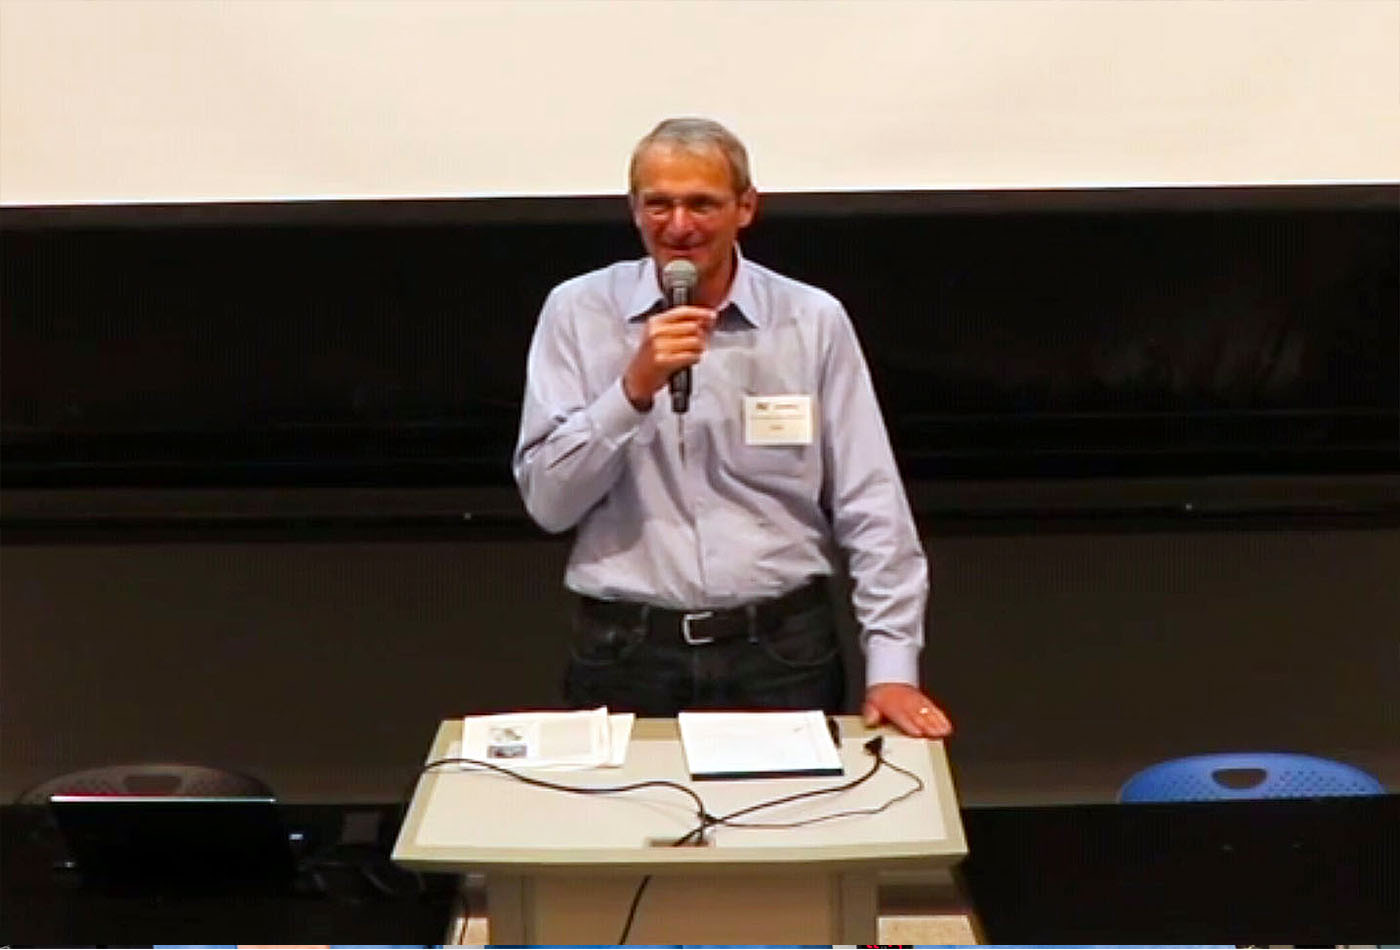 Frederick G. Keyes Professor Emeritus and 2005 Nobel Prize winner Richard R. Schrock,standing at the podium to give his opening remarks